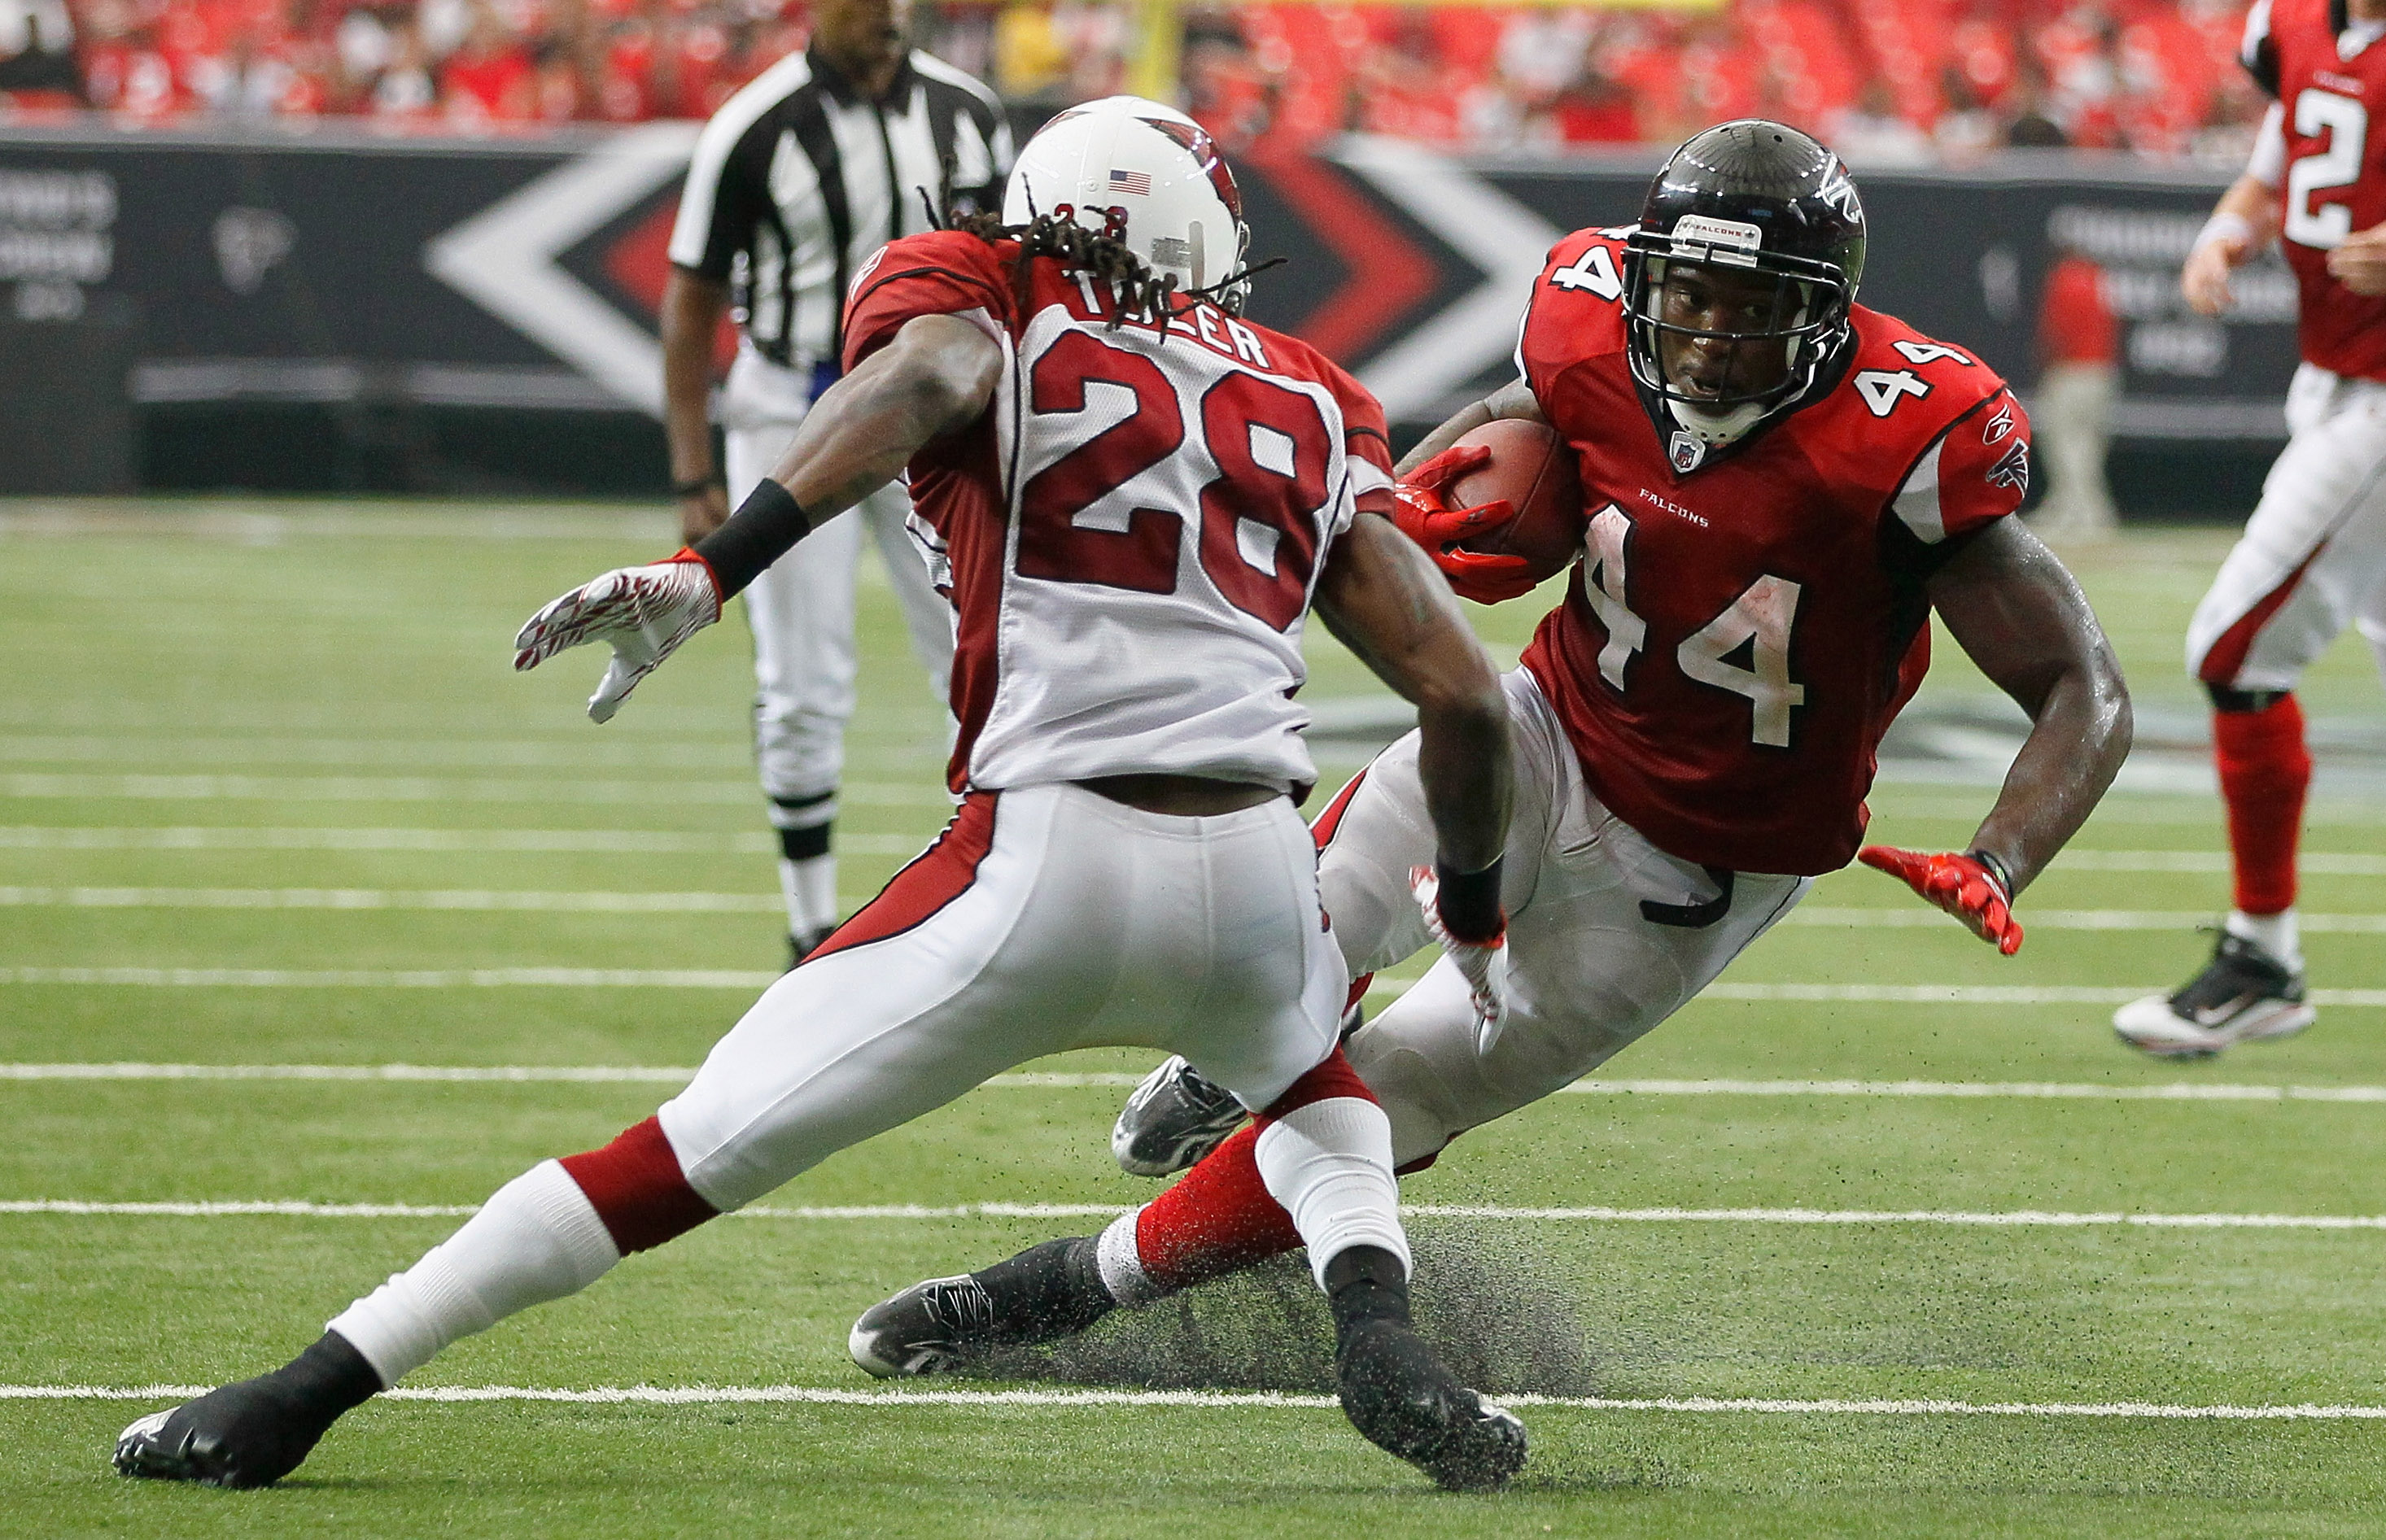 ATLANTA - SEPTEMBER 19:  Jason Snelling #44 of the Atlanta Falcons cuts back against Greg Toler #28 of the Arizona Cardinals at Georgia Dome on September 19, 2010 in Atlanta, Georgia.  (Photo by Kevin C. Cox/Getty Images)